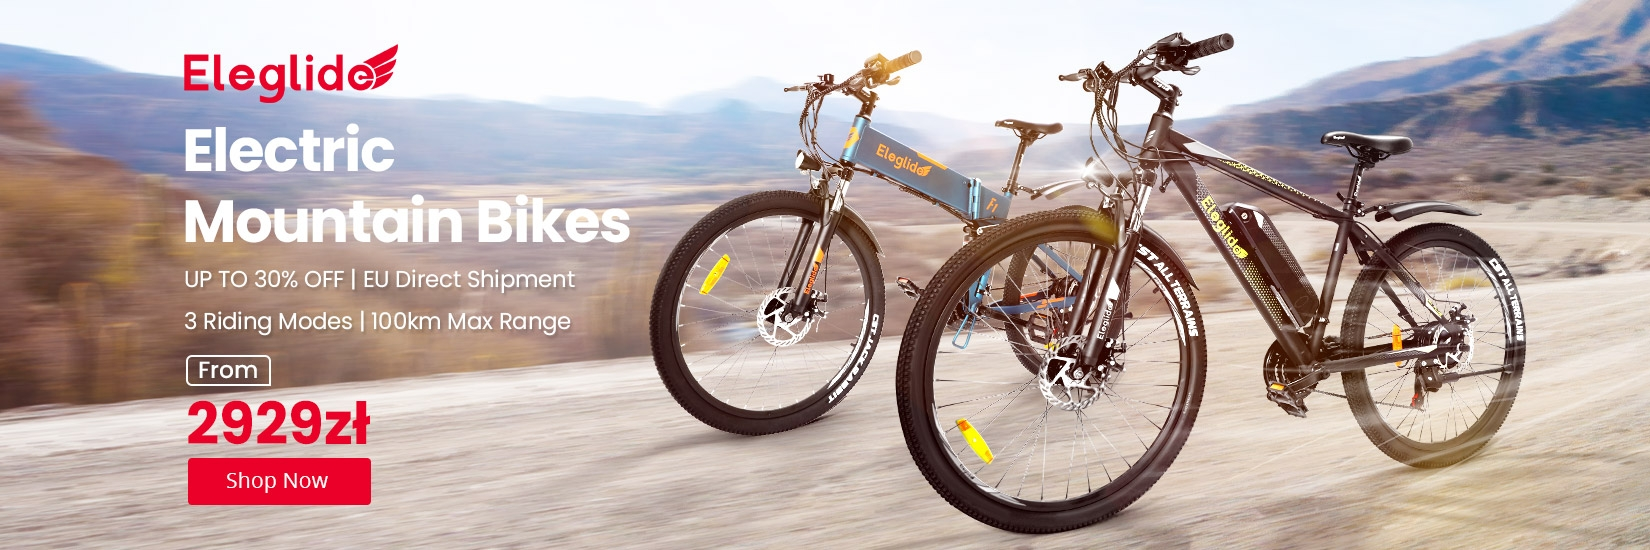 Eleglide electric mountain bikes, from only 2929zł! save up to 30%!